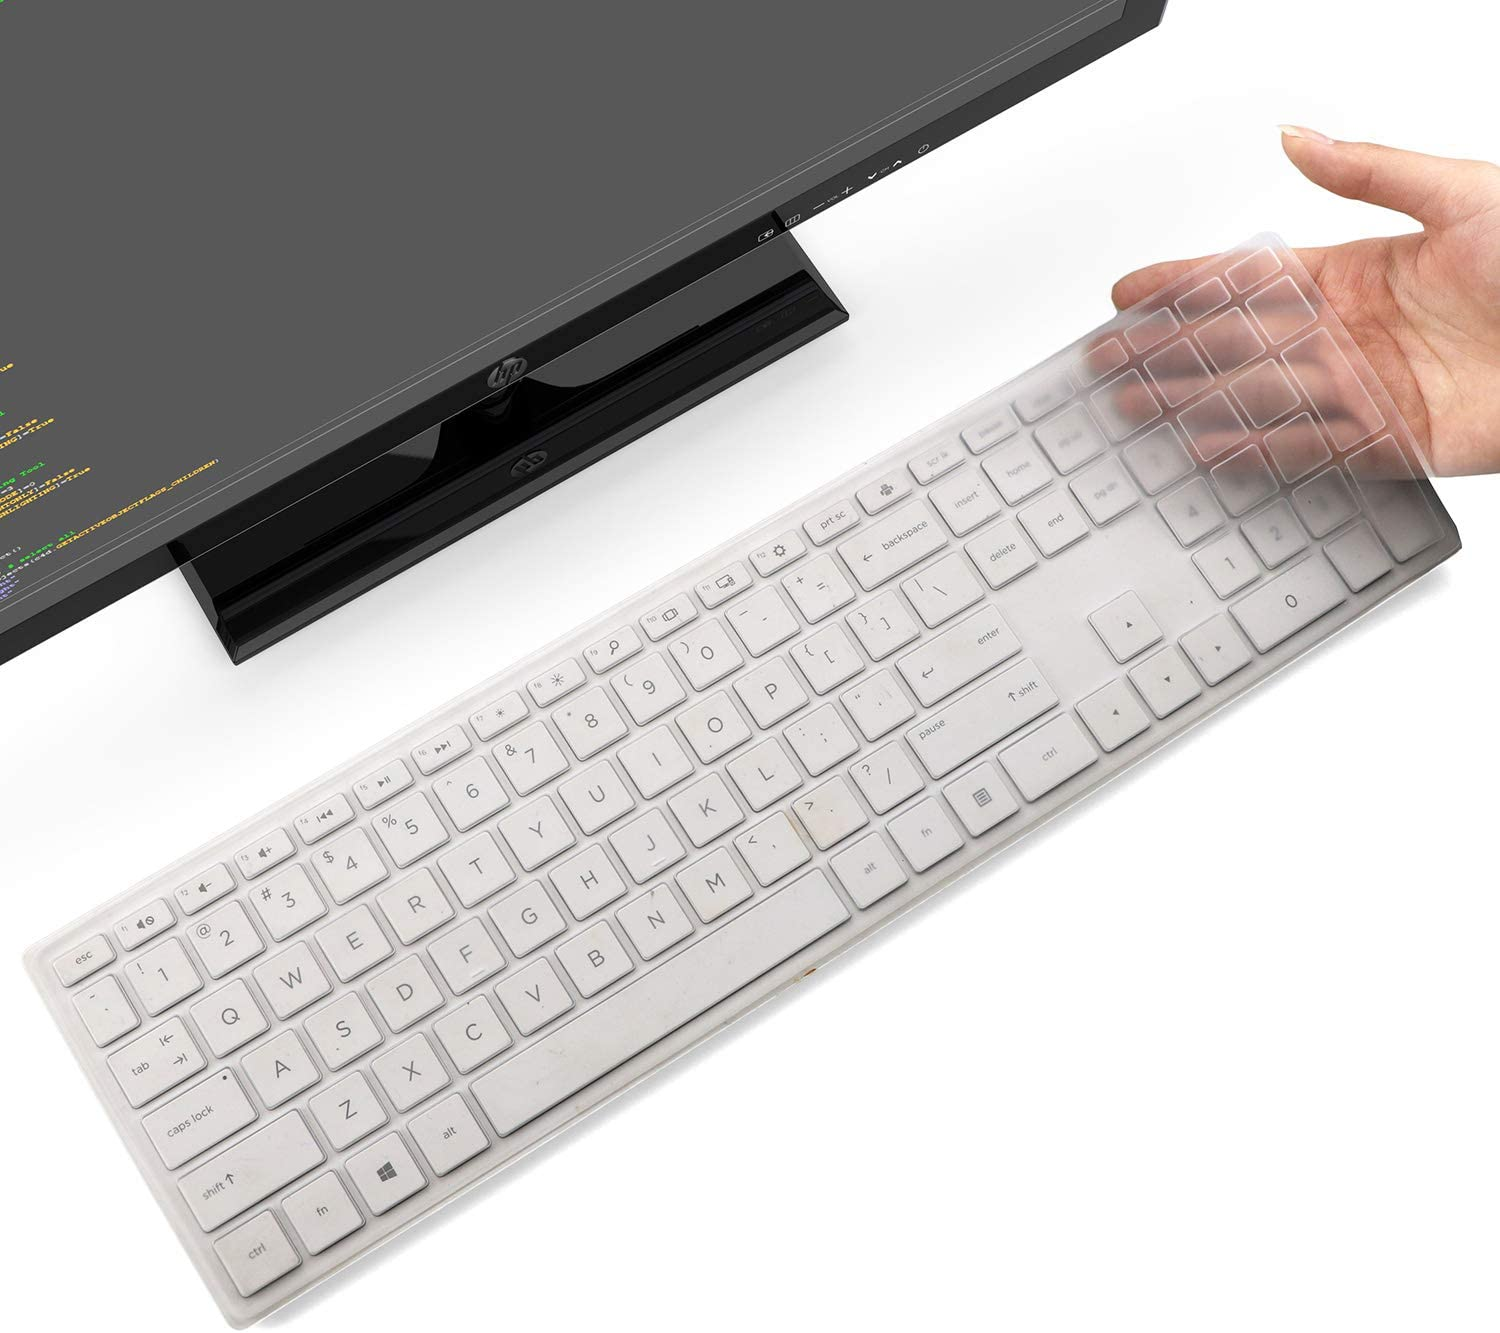 CaseBuy Keyboard Cover for HP Pavilion 27-inch All in One PC xa0050/xa0080/xa0014/0370Nd/0010Na/0076Hk, HP Pavilion 24-inch All in One xa0020/xa0032/xa0013w, HP All-in-One Accessories, Clear